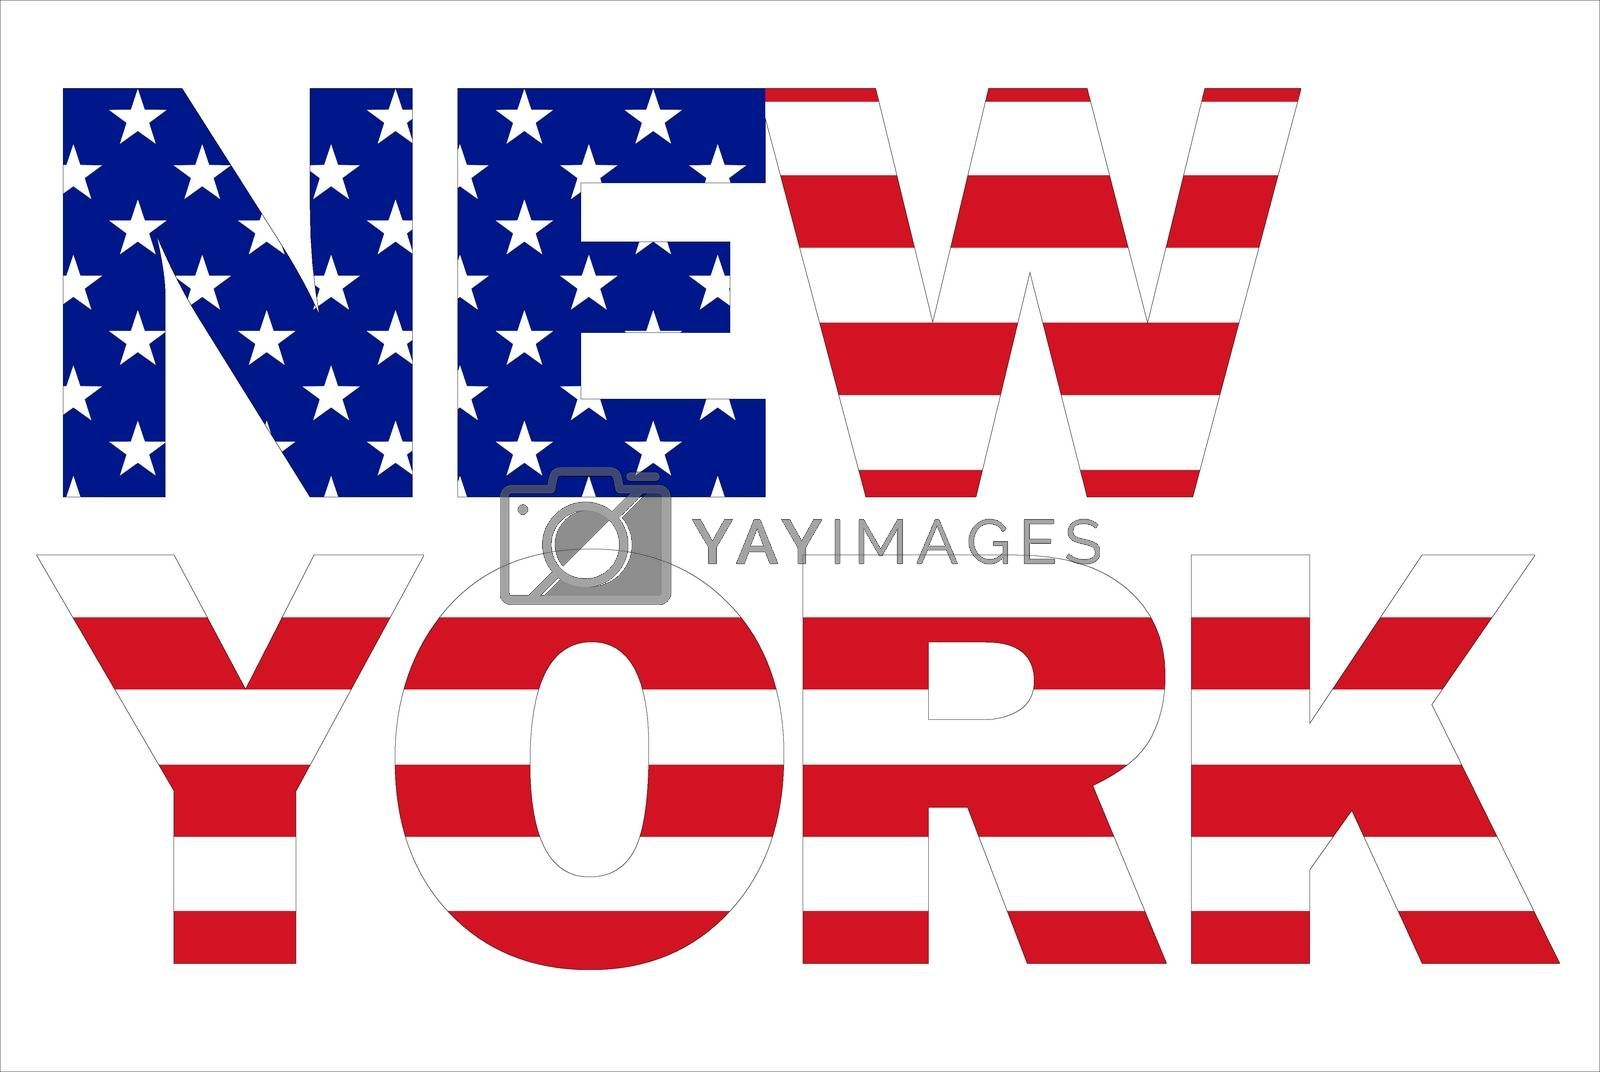 New York text by alessandro0770